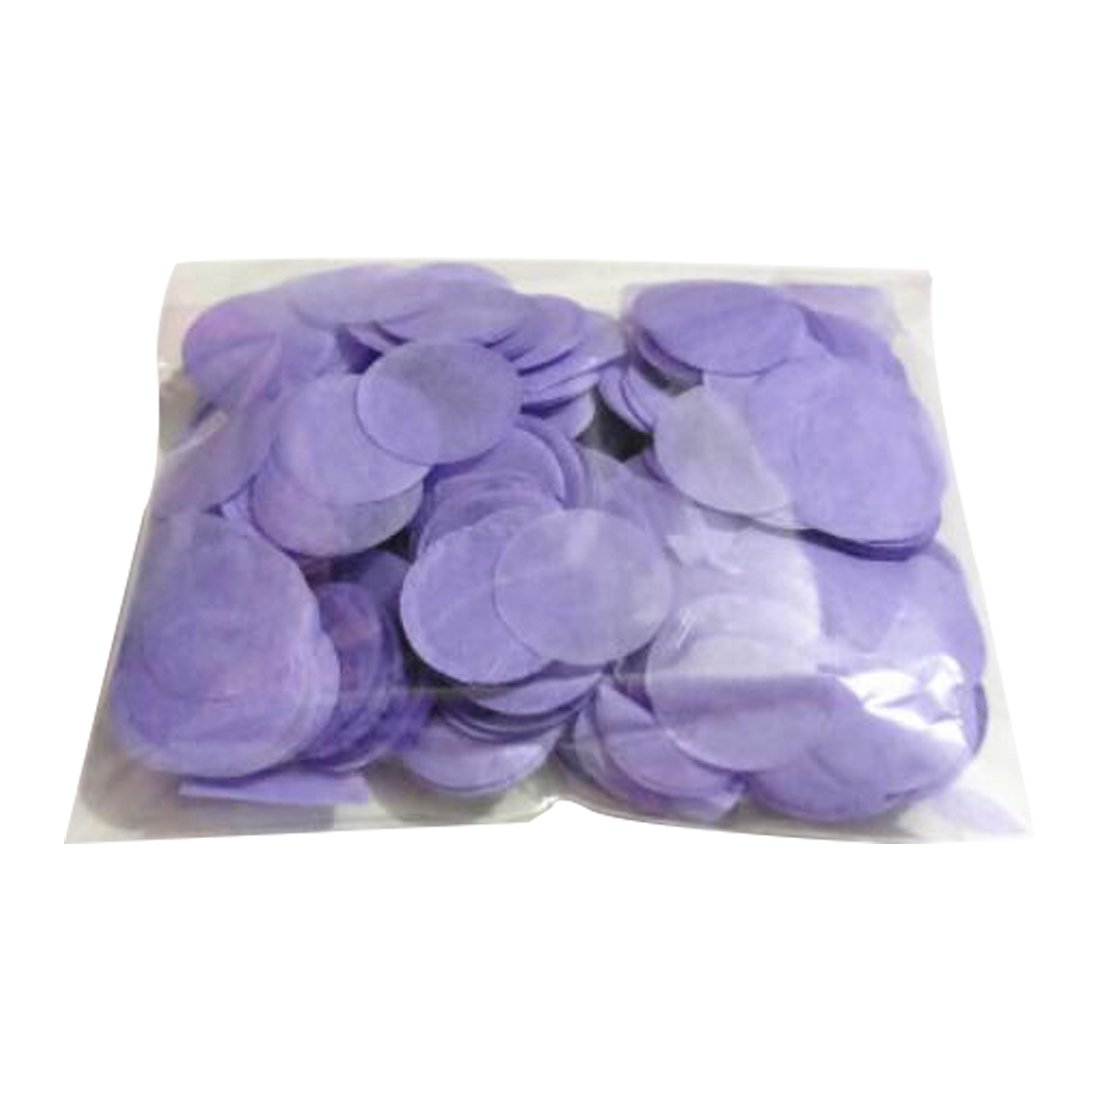 Joylive Bright Round Tissue Paper Confetti 30G Per Bag 1 Inch (2.5Cm) Light Purple